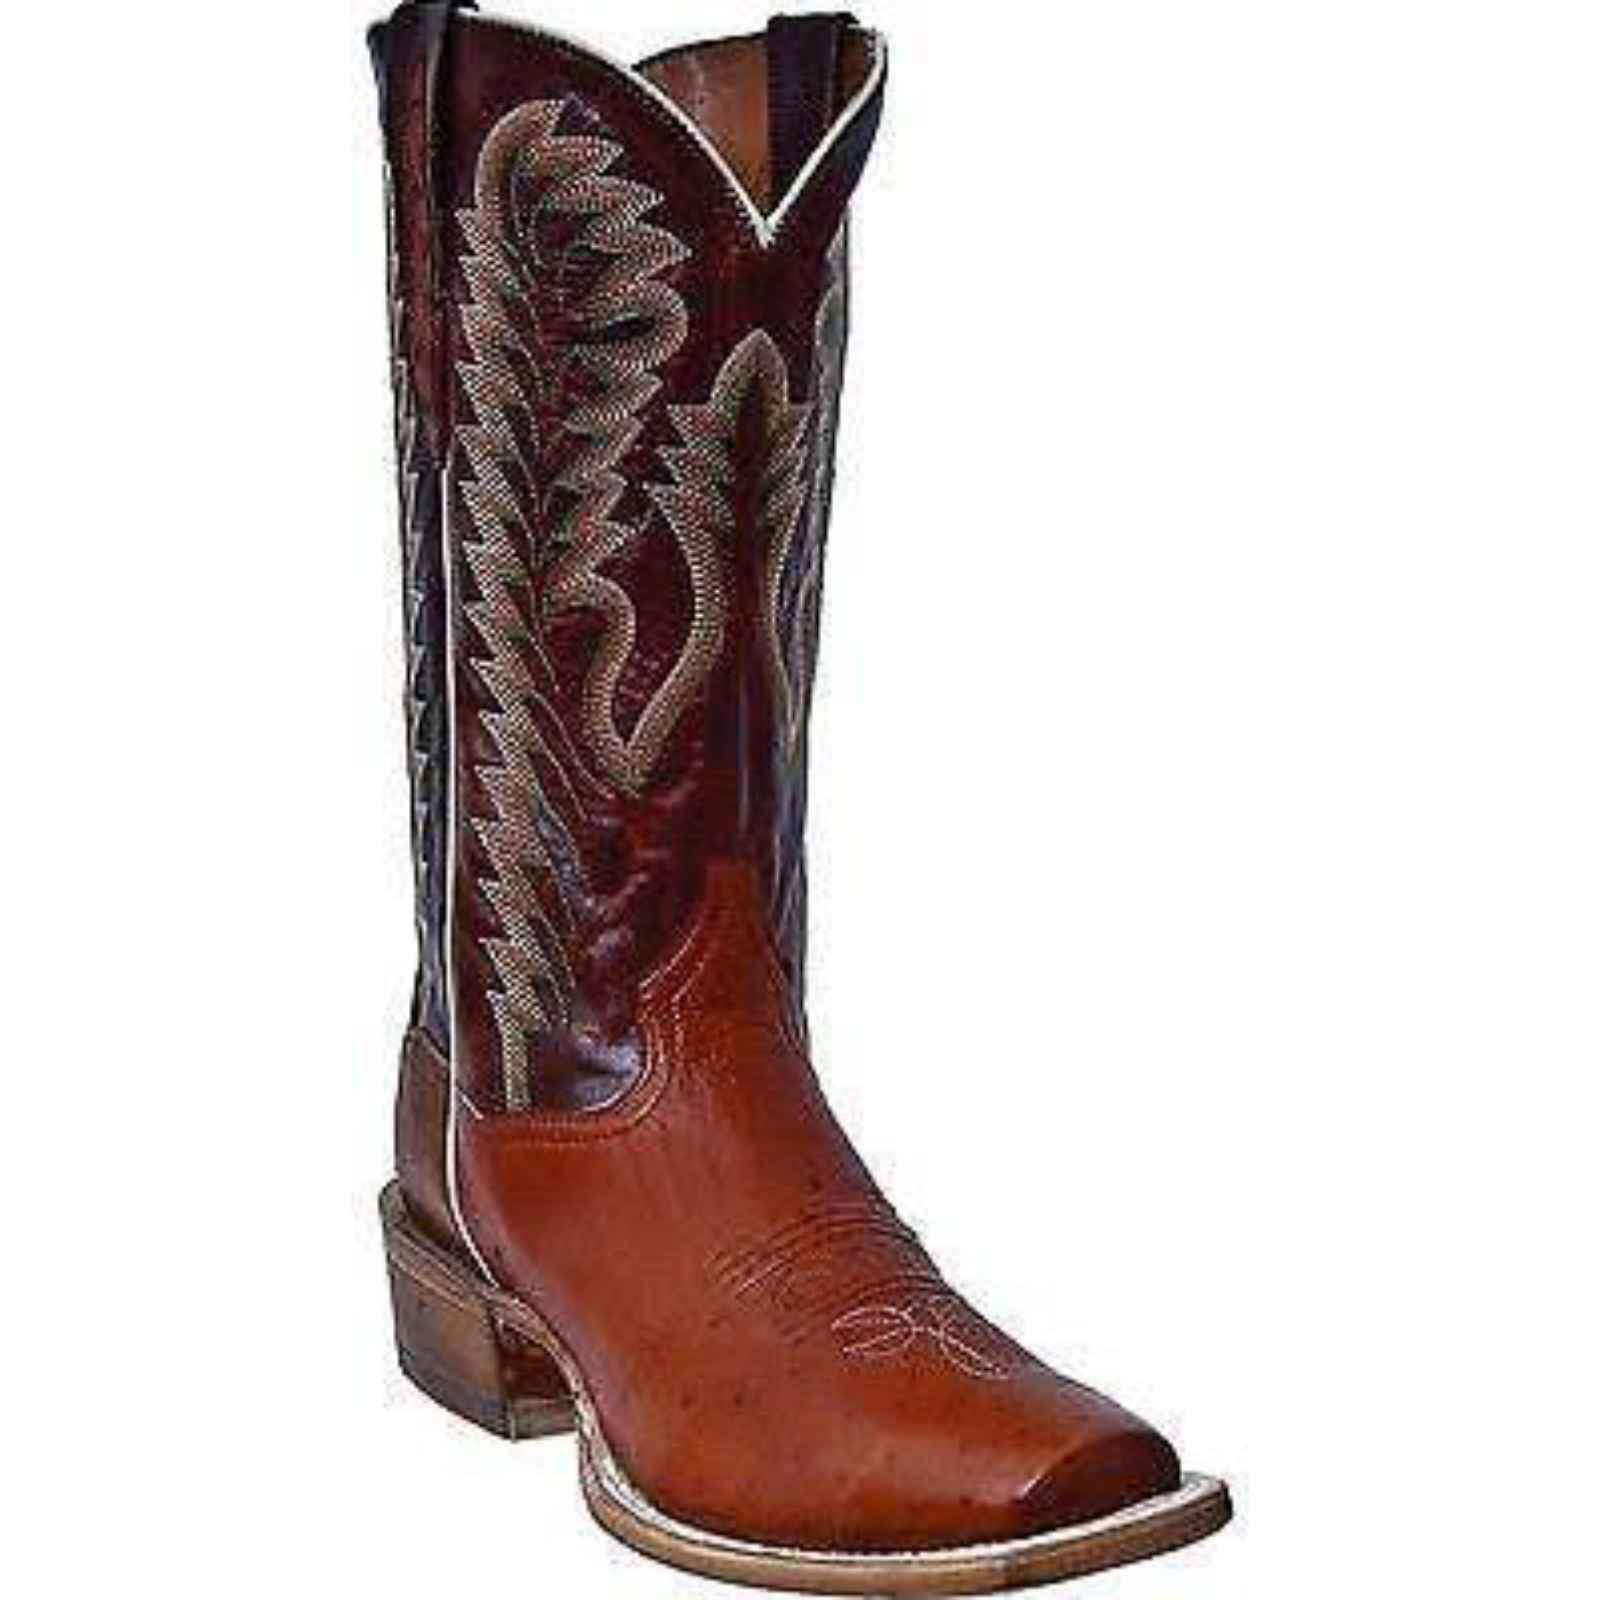 "Laredo 8"" Tan Distressed Round Toe Western Boots, LC2453 by Laredo"